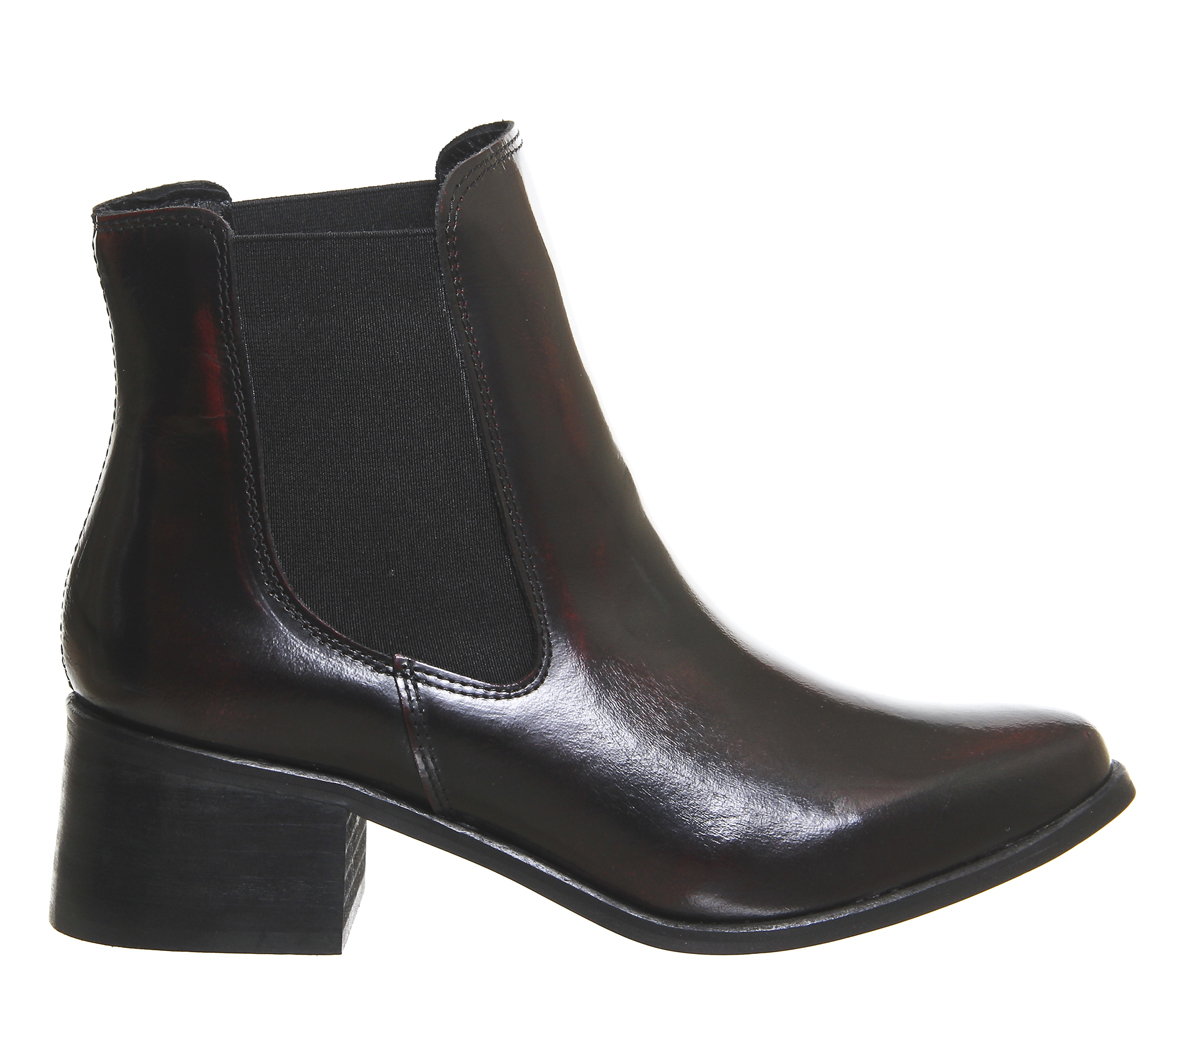 Shoe the bear Liverpool Heeled Chelsea Boots in Black